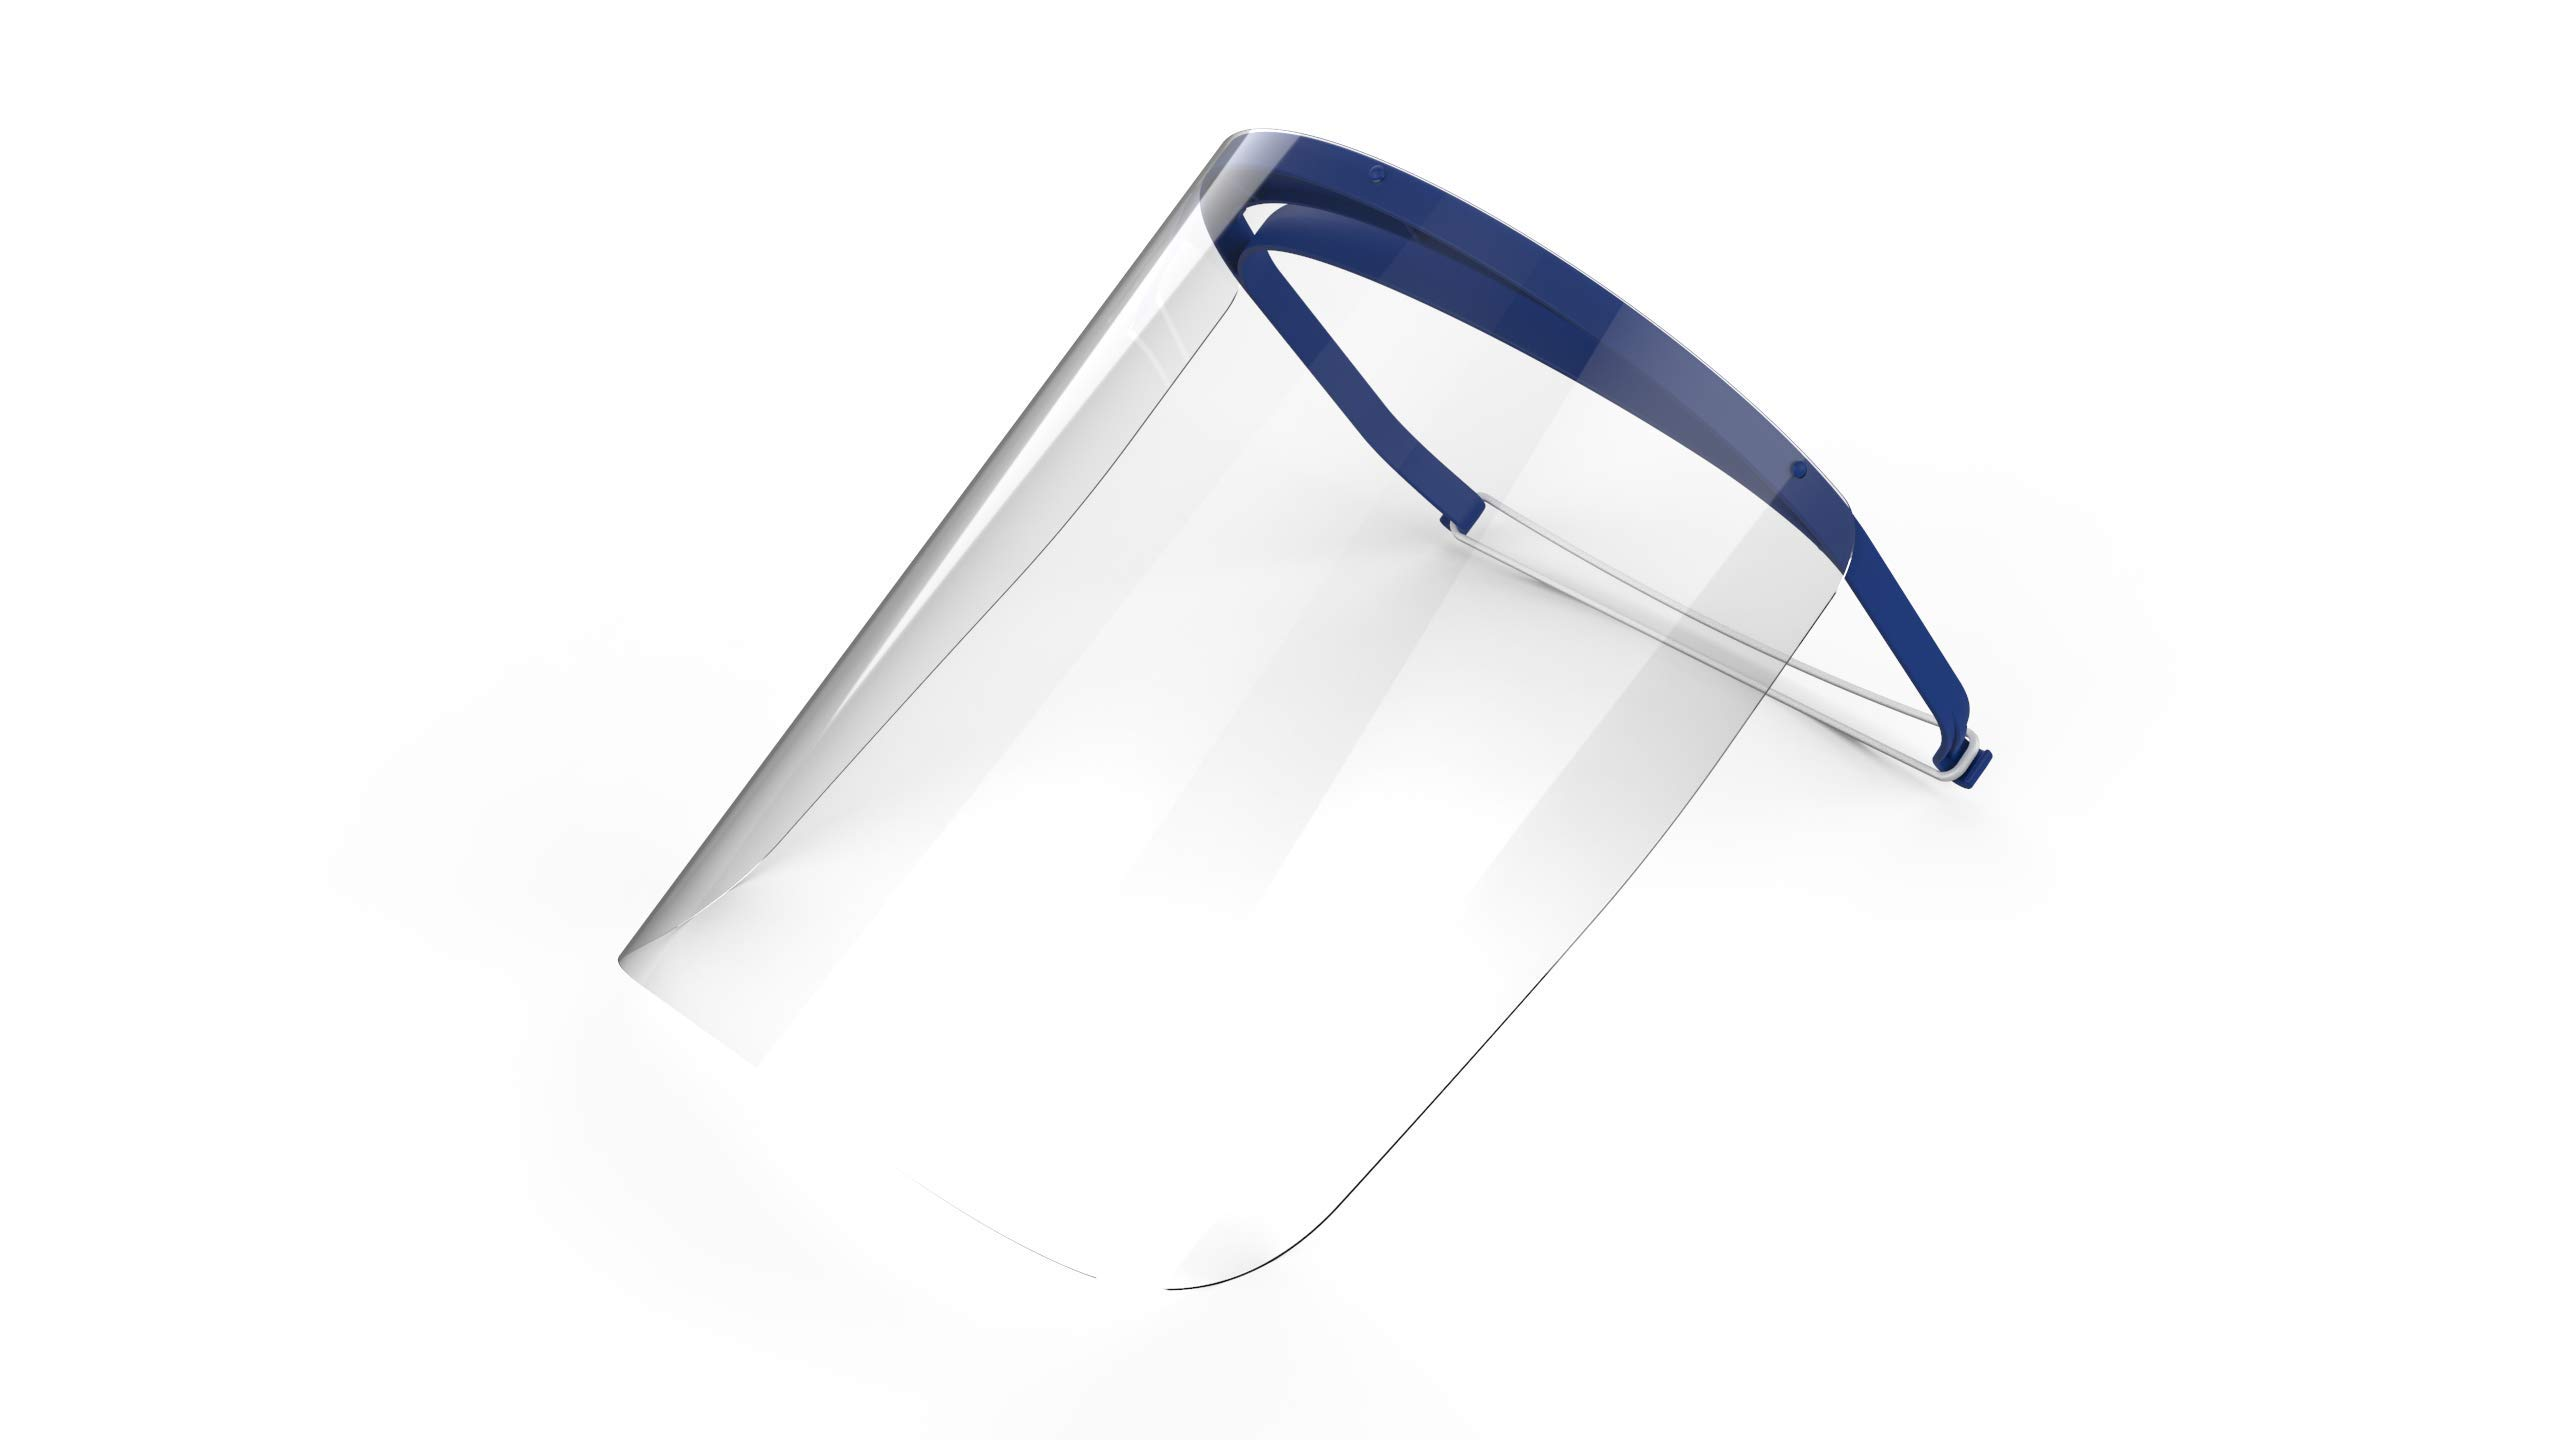 Full Face Shield with Visor   For Medical, Dental, or Personal Protection   Recommended for Single Use   Durable, Lightweight, and Comfortable   One Shield   REMOVE PROTECTIVE PLASTIC FILM BEFORE USE